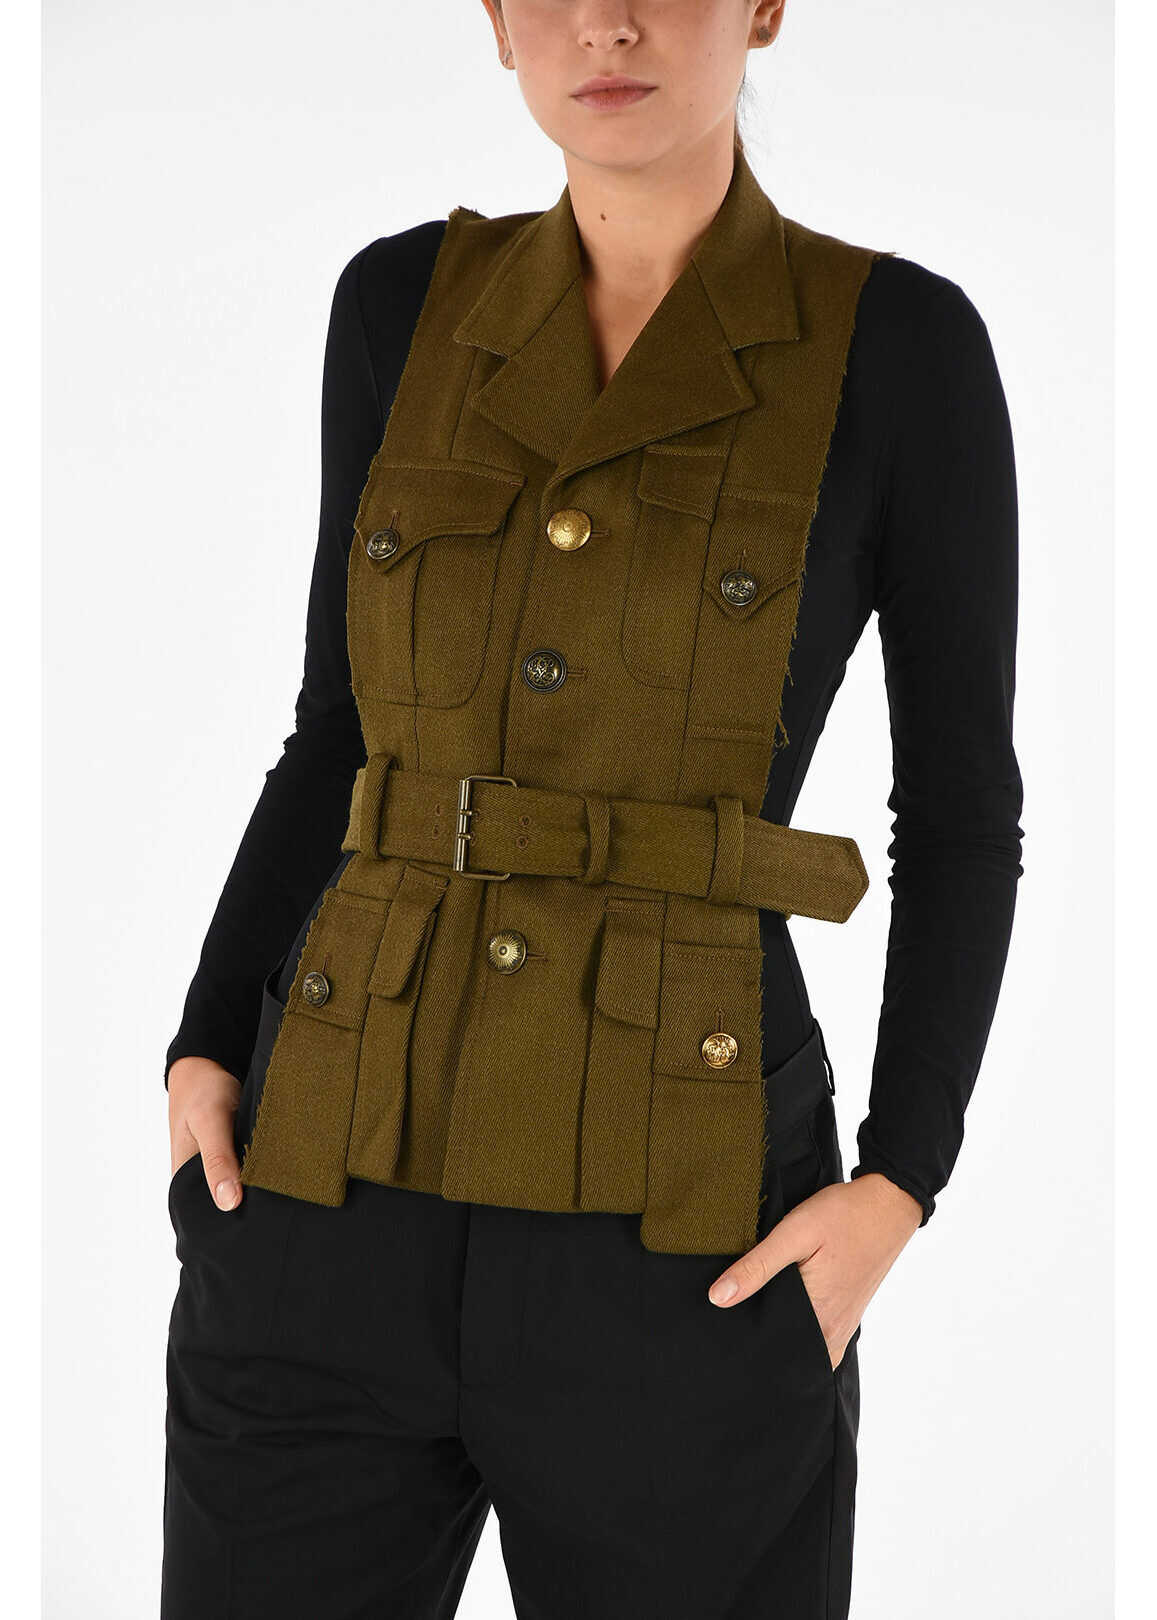 MM0 Gilet with Belt thumbnail